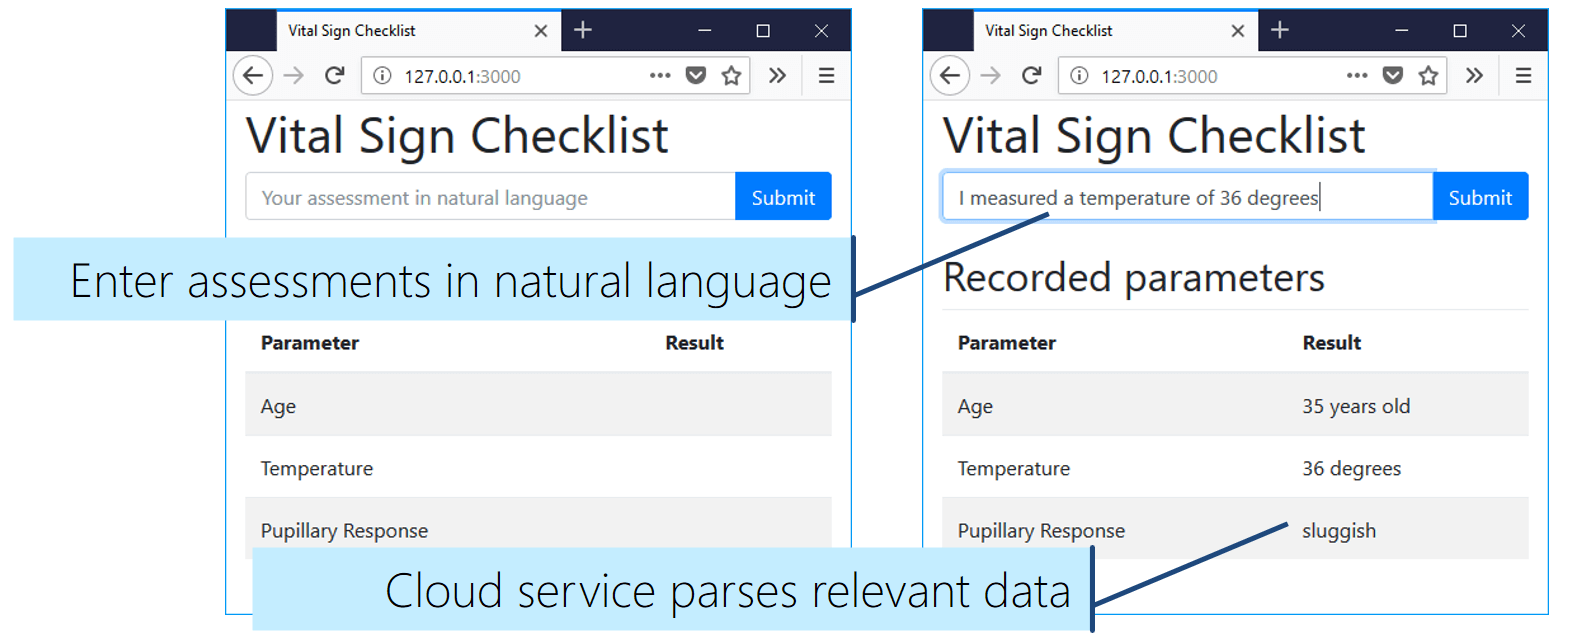 The final vital sign checklist app with natural language understanding